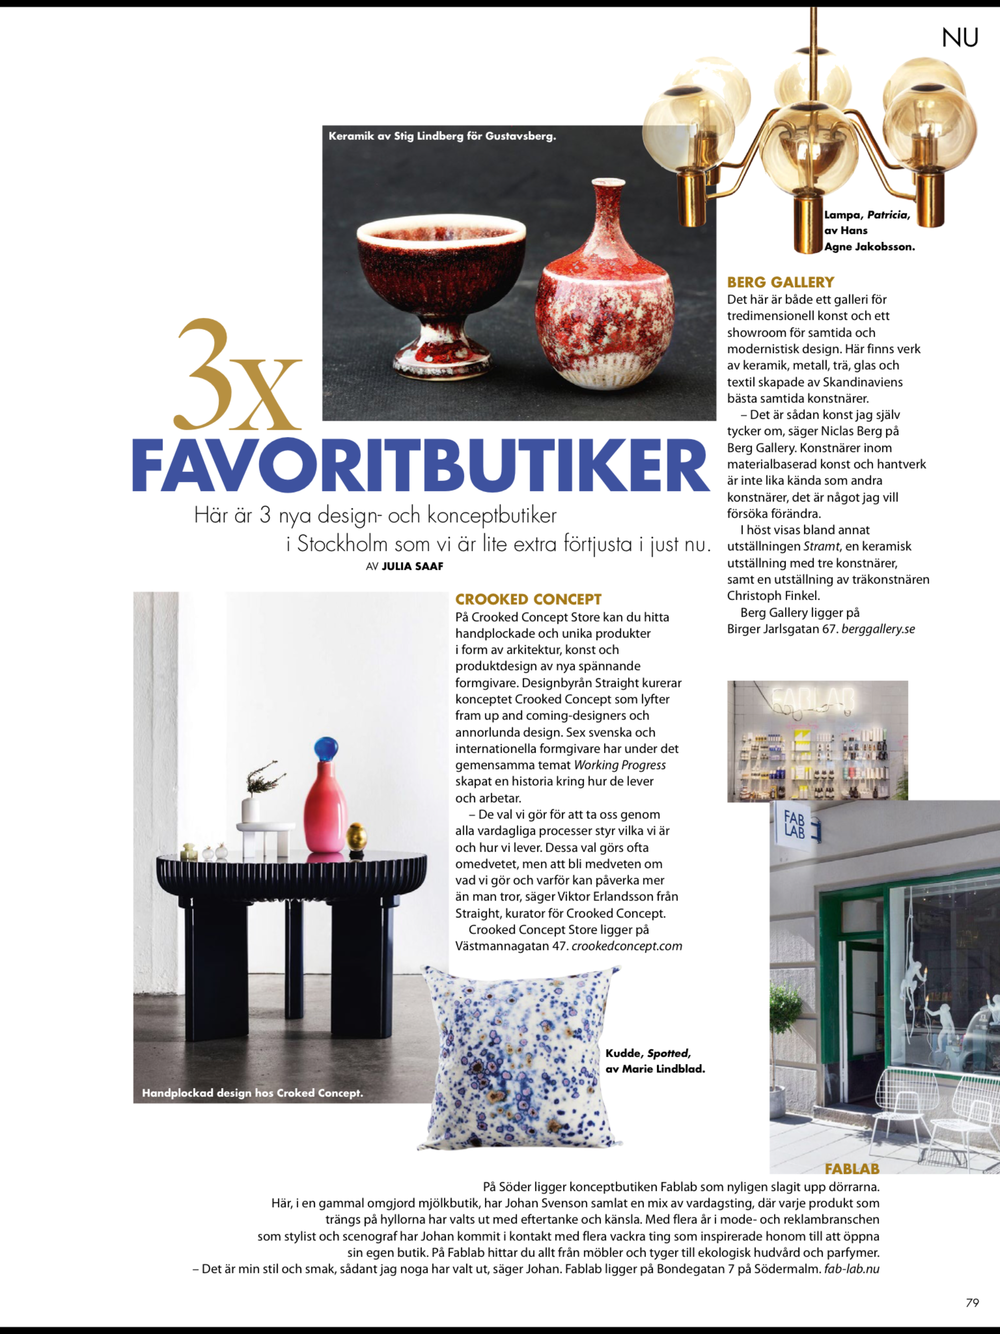 FABLAB featured in ELLE DECORATION